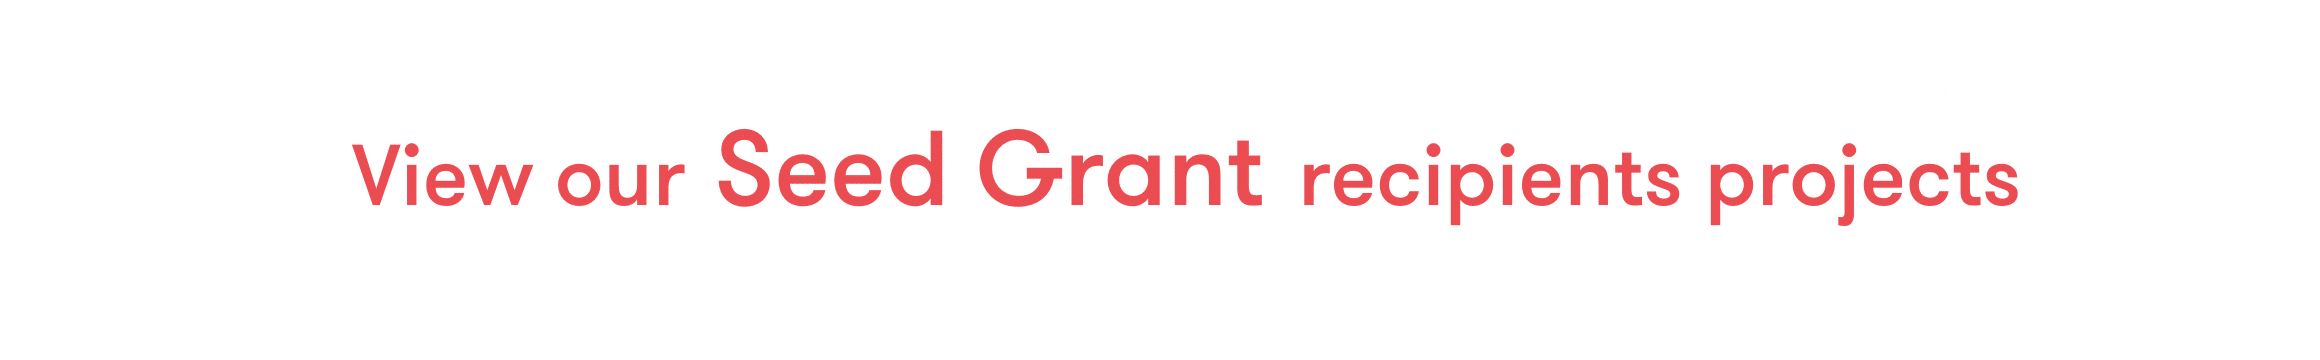 seed grants recipients projects3